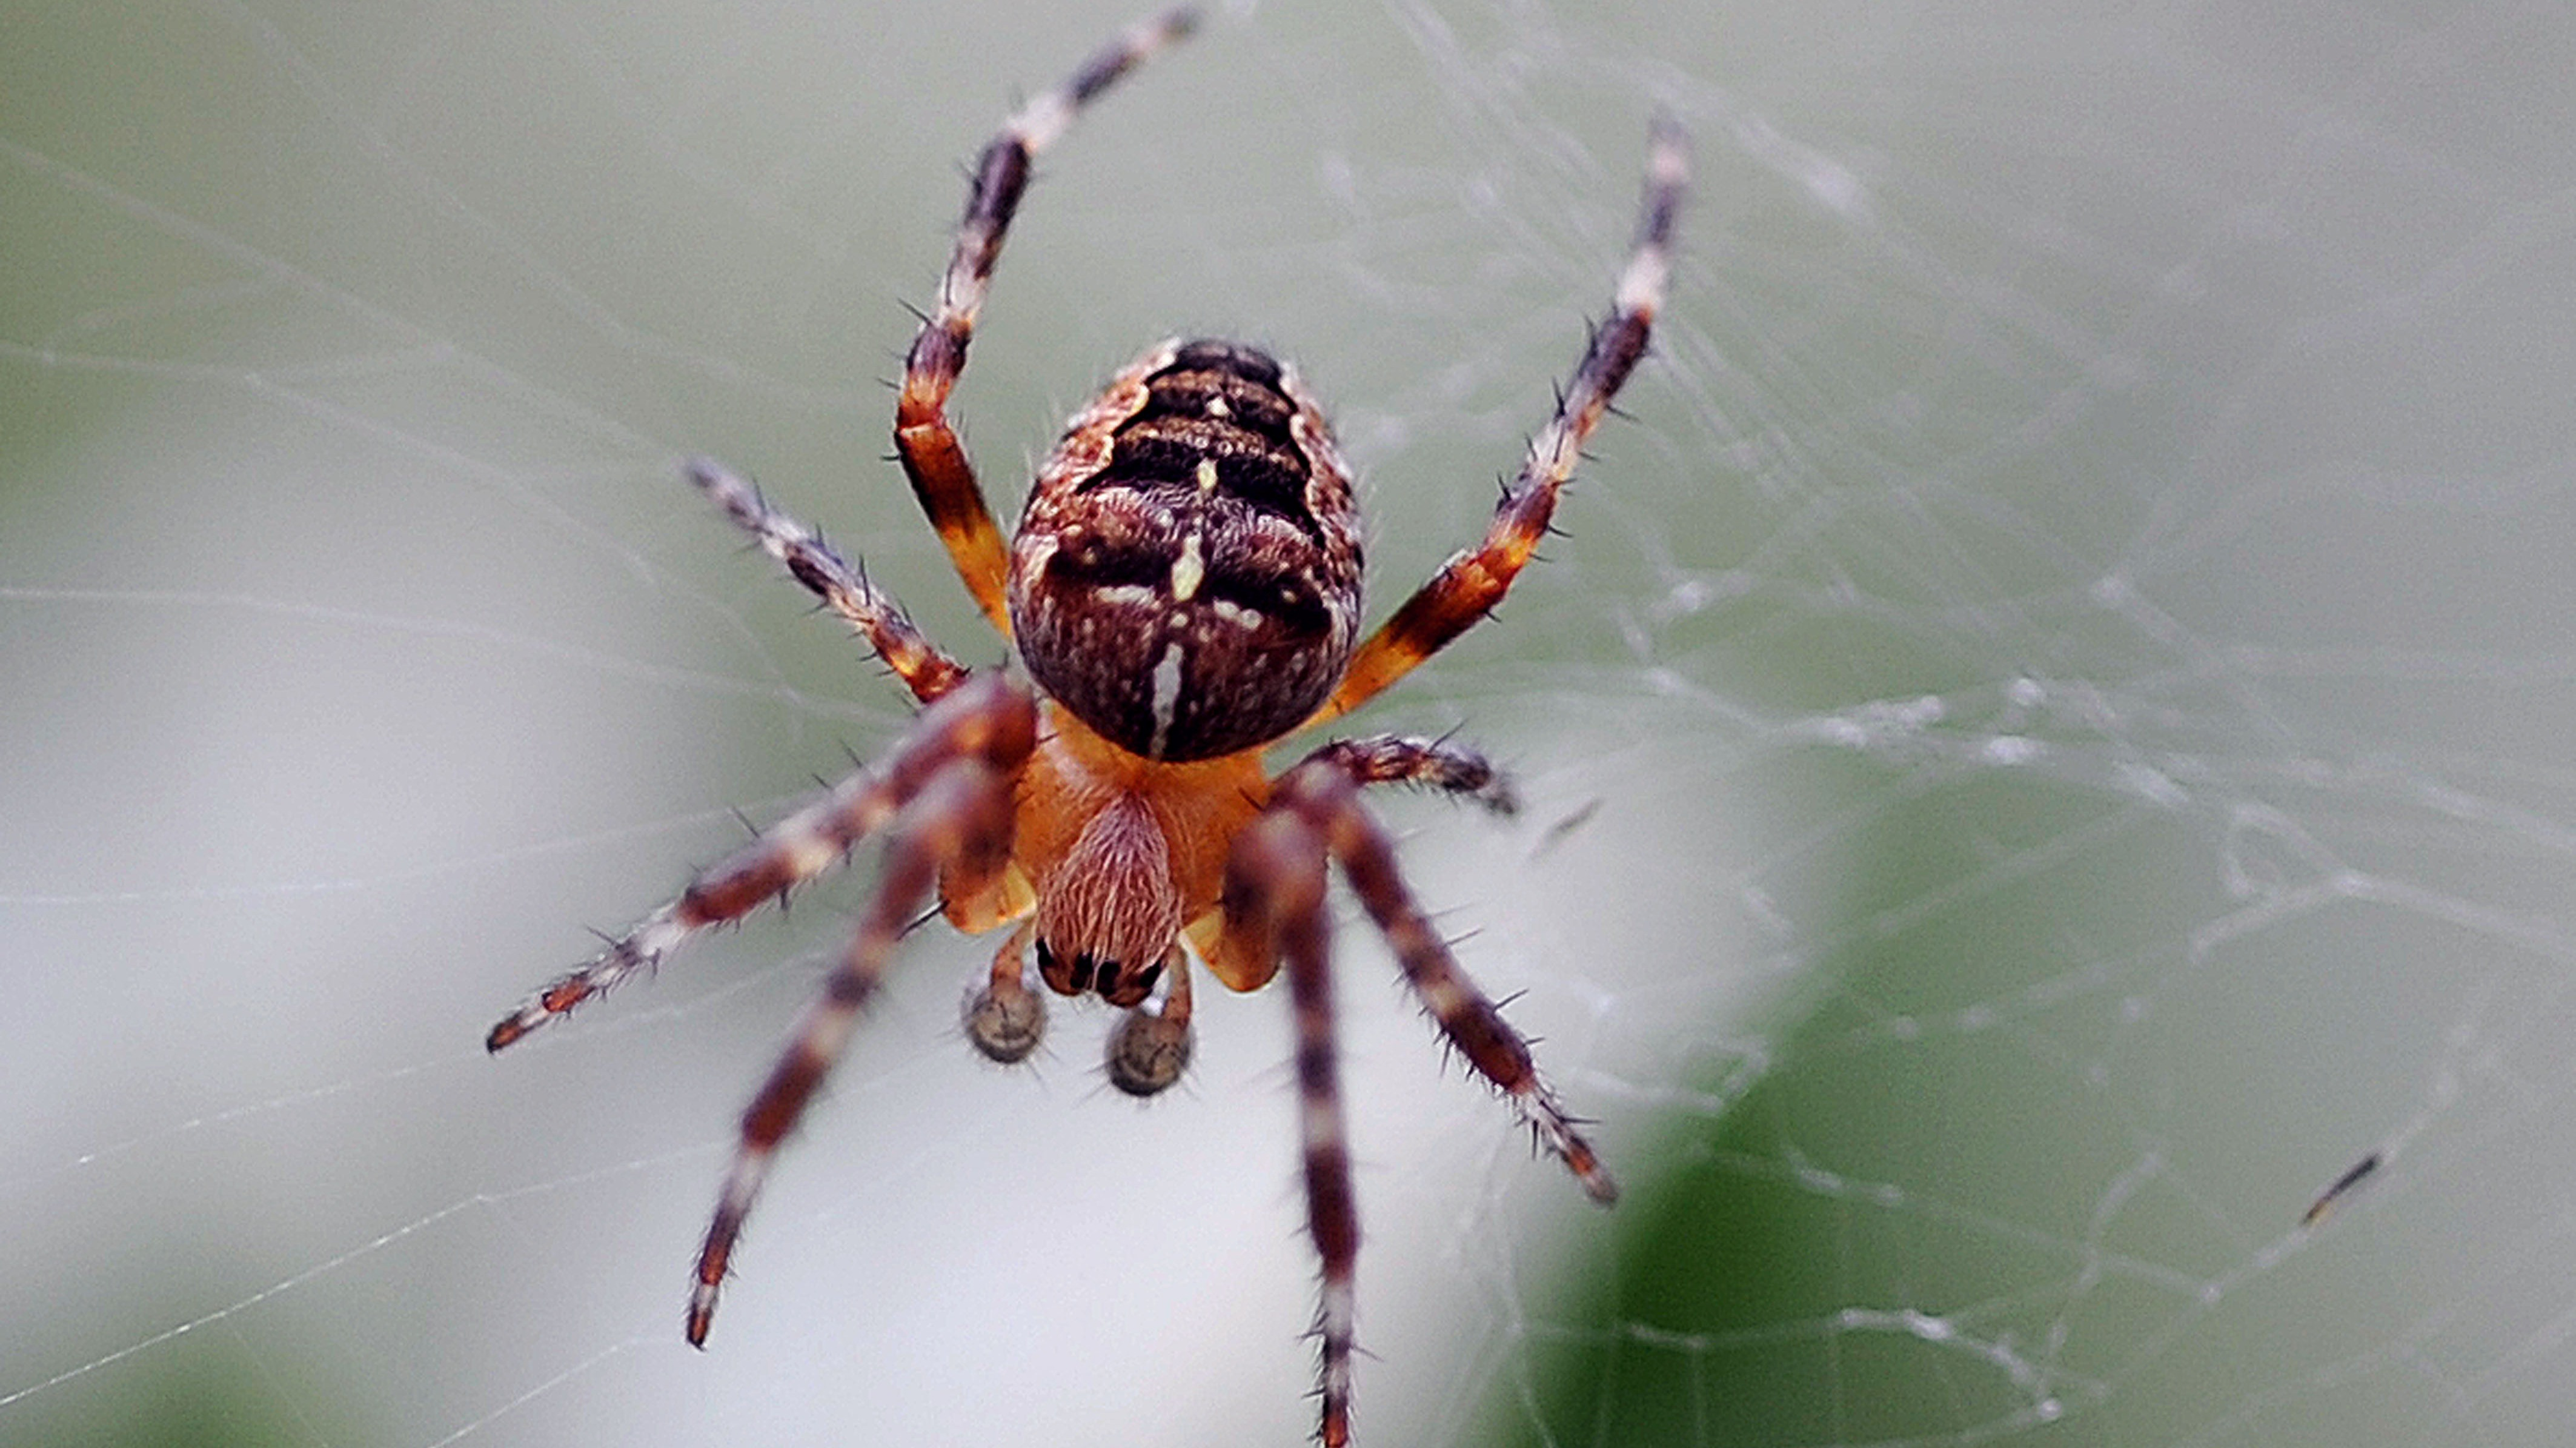 man accidentally sets house on fire trying to kill spider